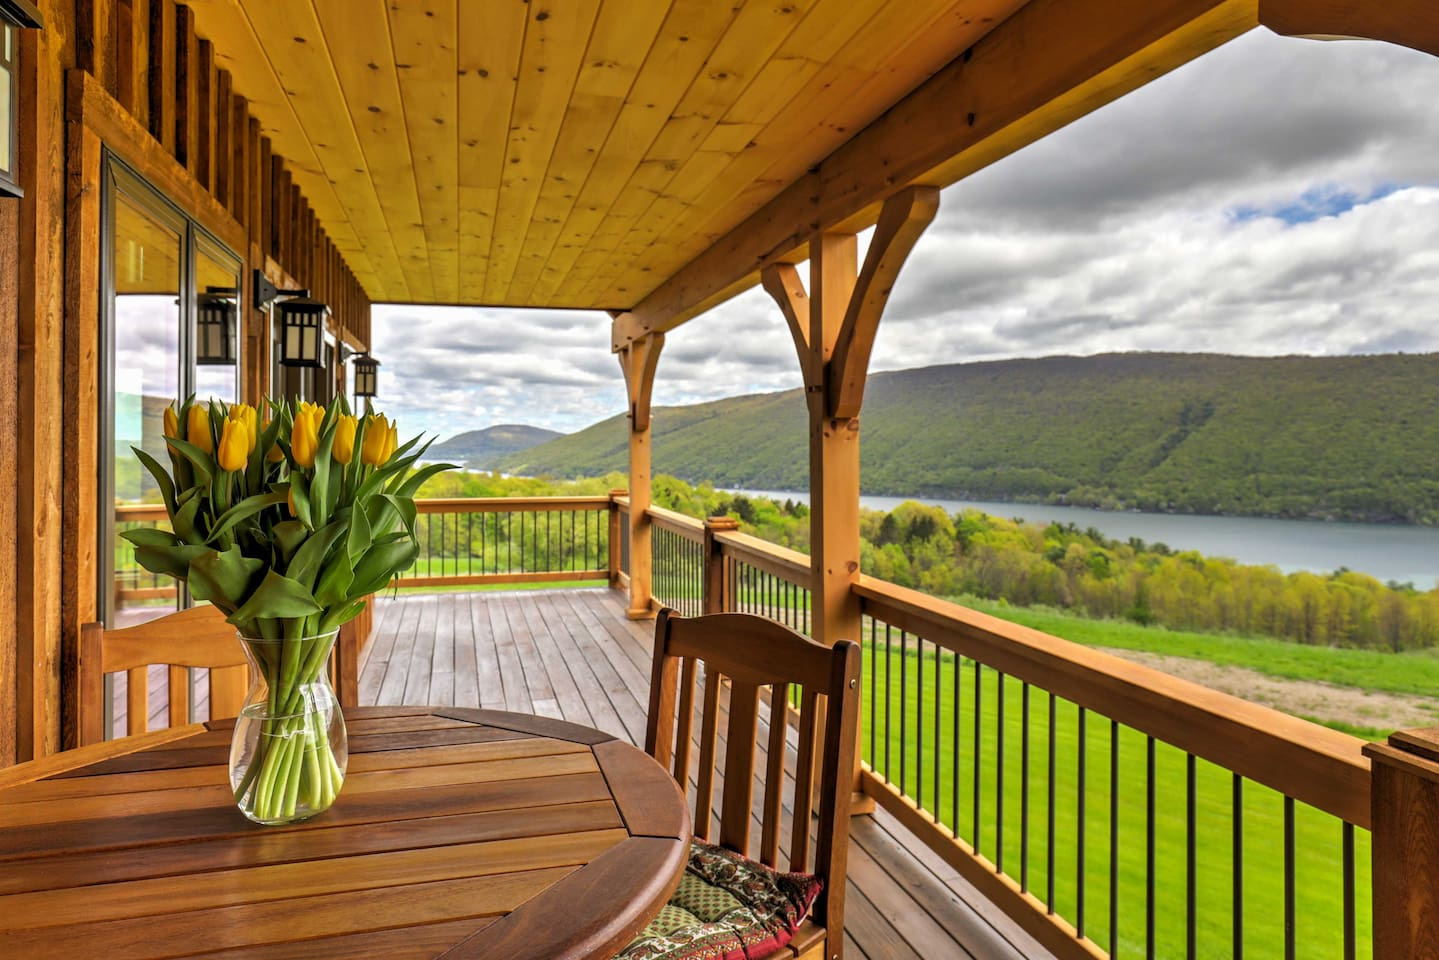 Look forward to lounging on the wrap-around deck overlooking Canandaigua Lake.